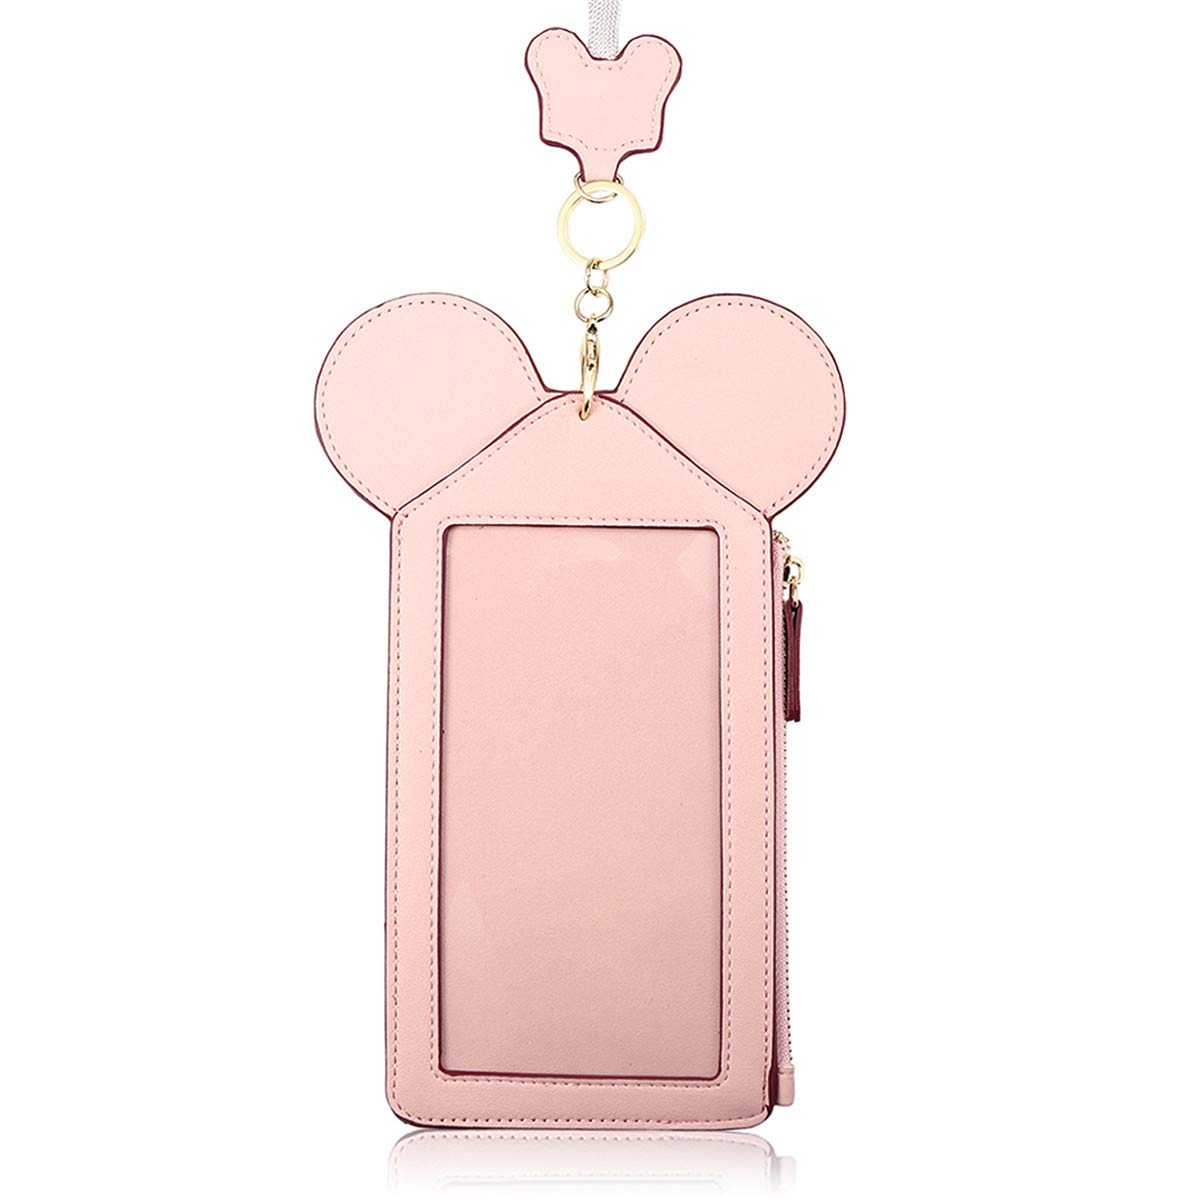 Neck Pouch, Charminer Women Cute Animal Shape Lanyard Phone Purse Neck Bag Travel Documents, Card Holder Coin Purse Neck Bag for 4.7/5.5in Phones Light Pink 4.7in by CHARMINER (Image #1)